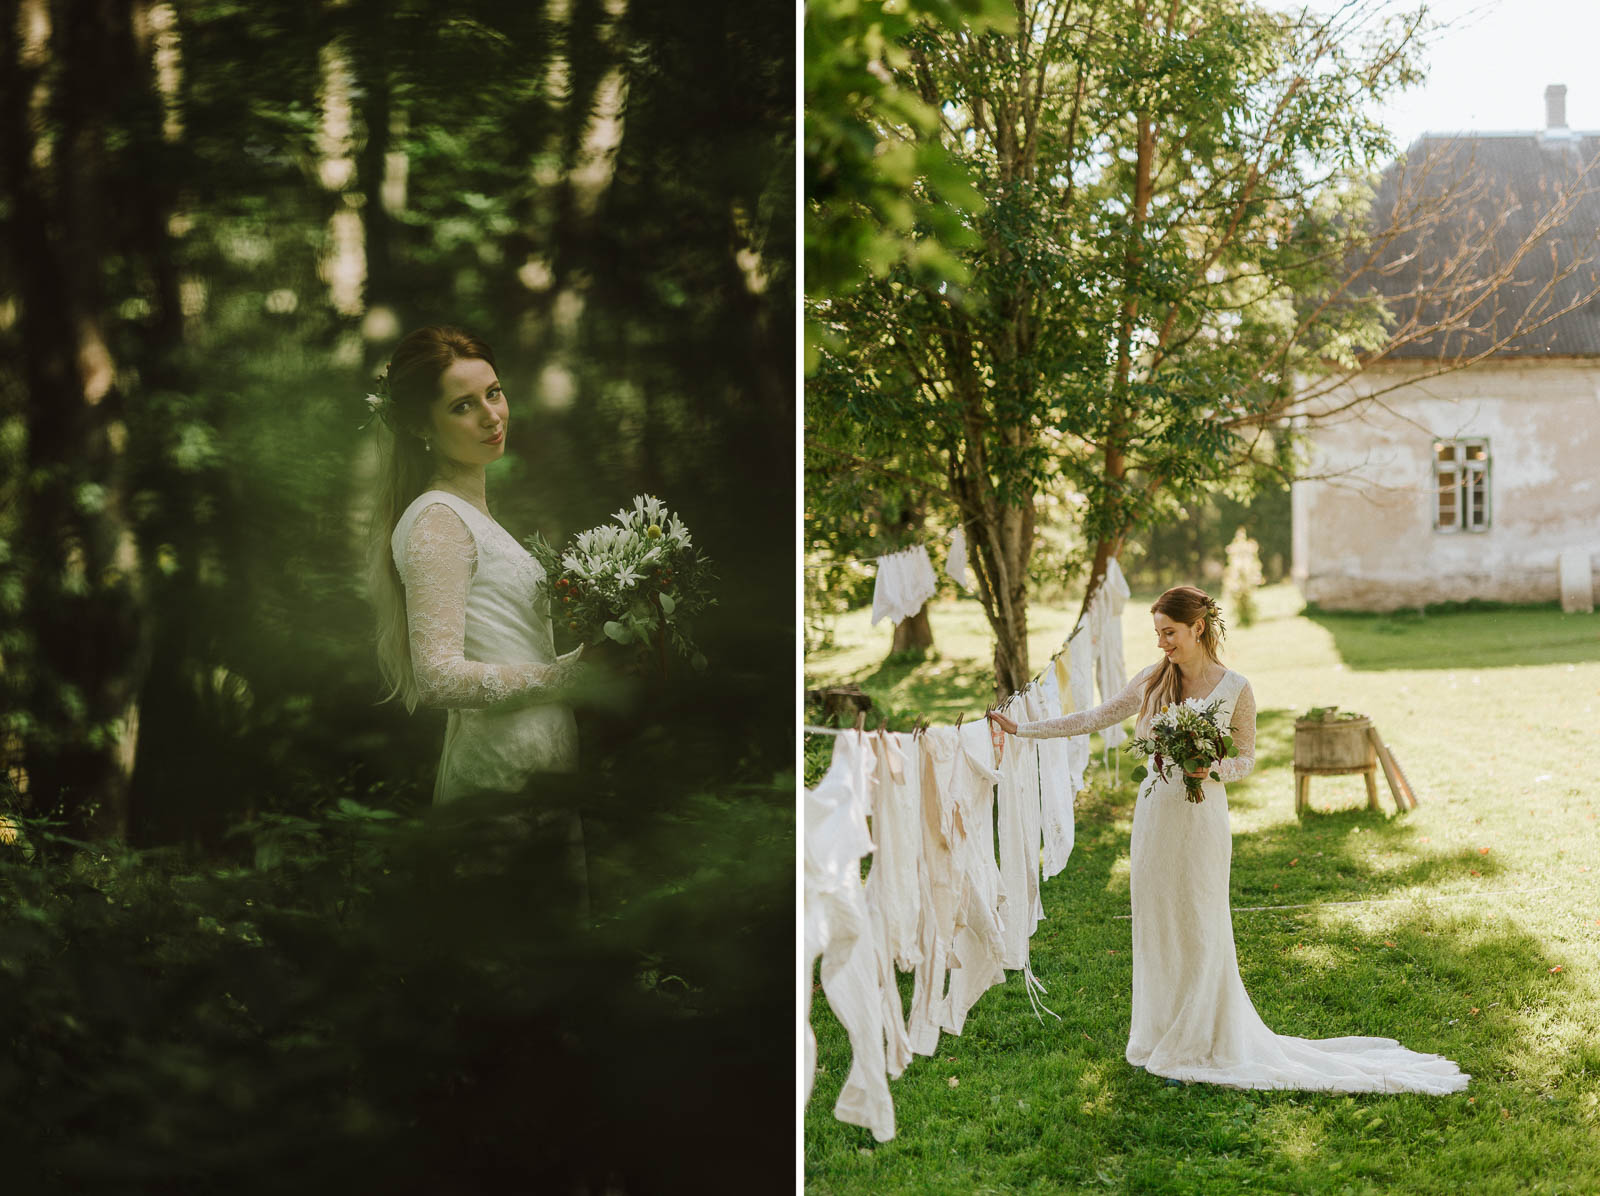 Pohjaka_mois_manor_pulm_wedding_Mait_Juriado-20